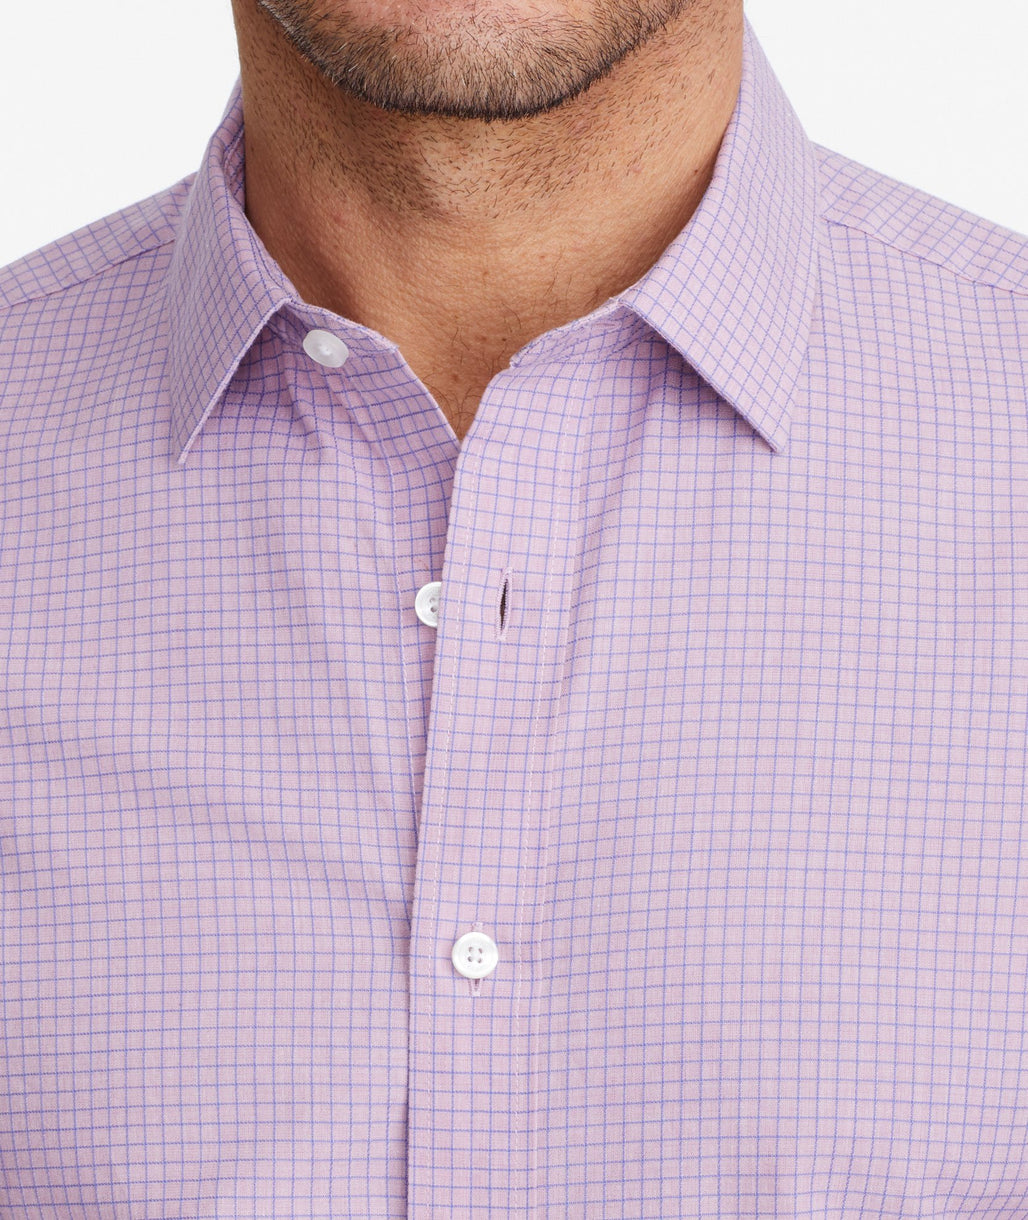 Model wearing a Purple Classic Cotton Short-Sleeve Colonia Shirt